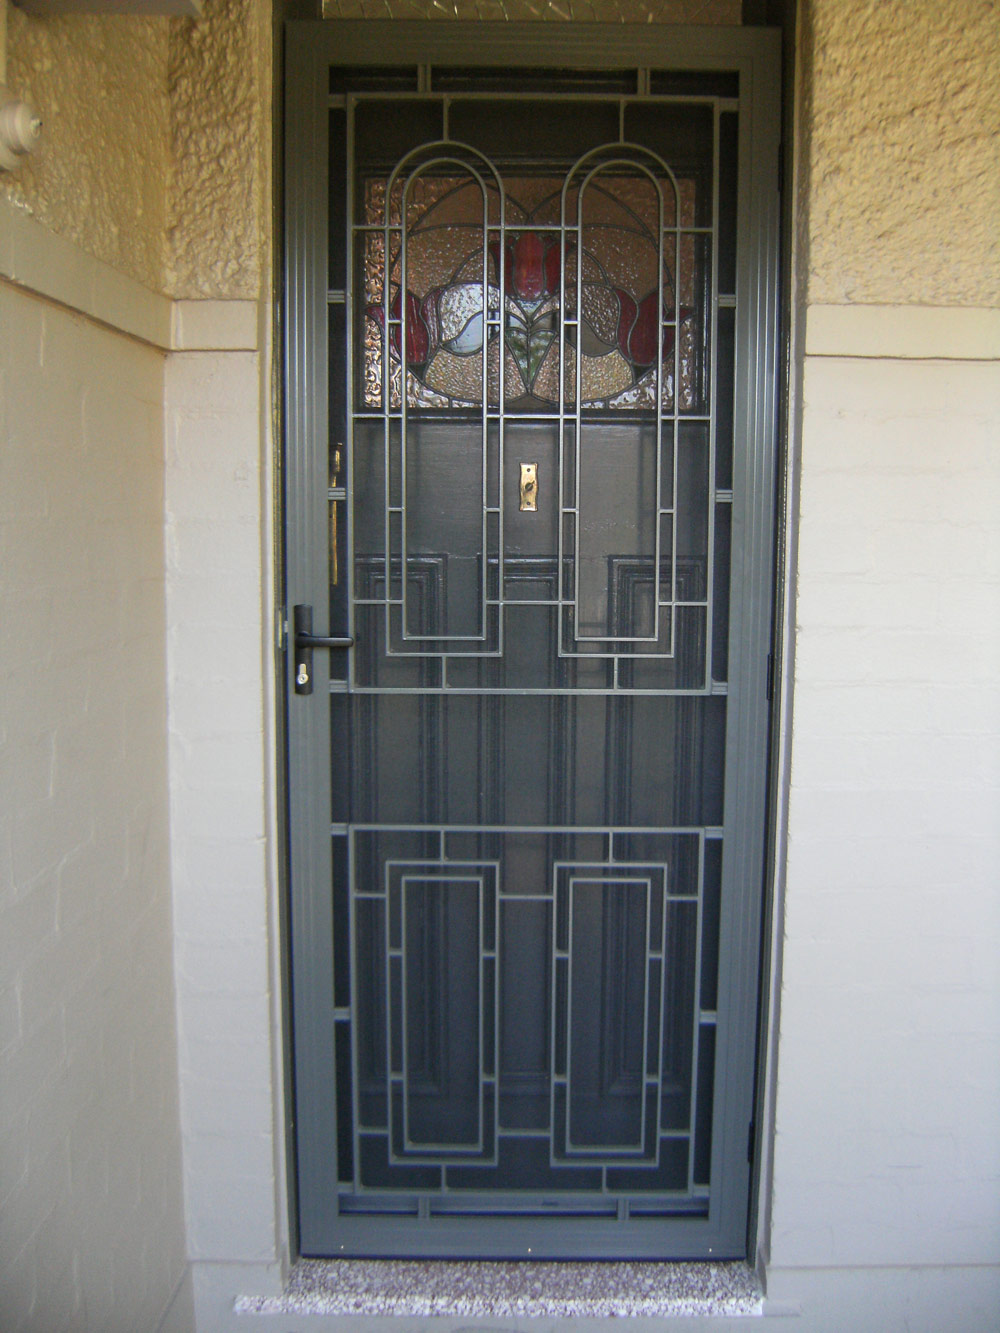 Screens screen doors prestige home solutions - White security screen door ...